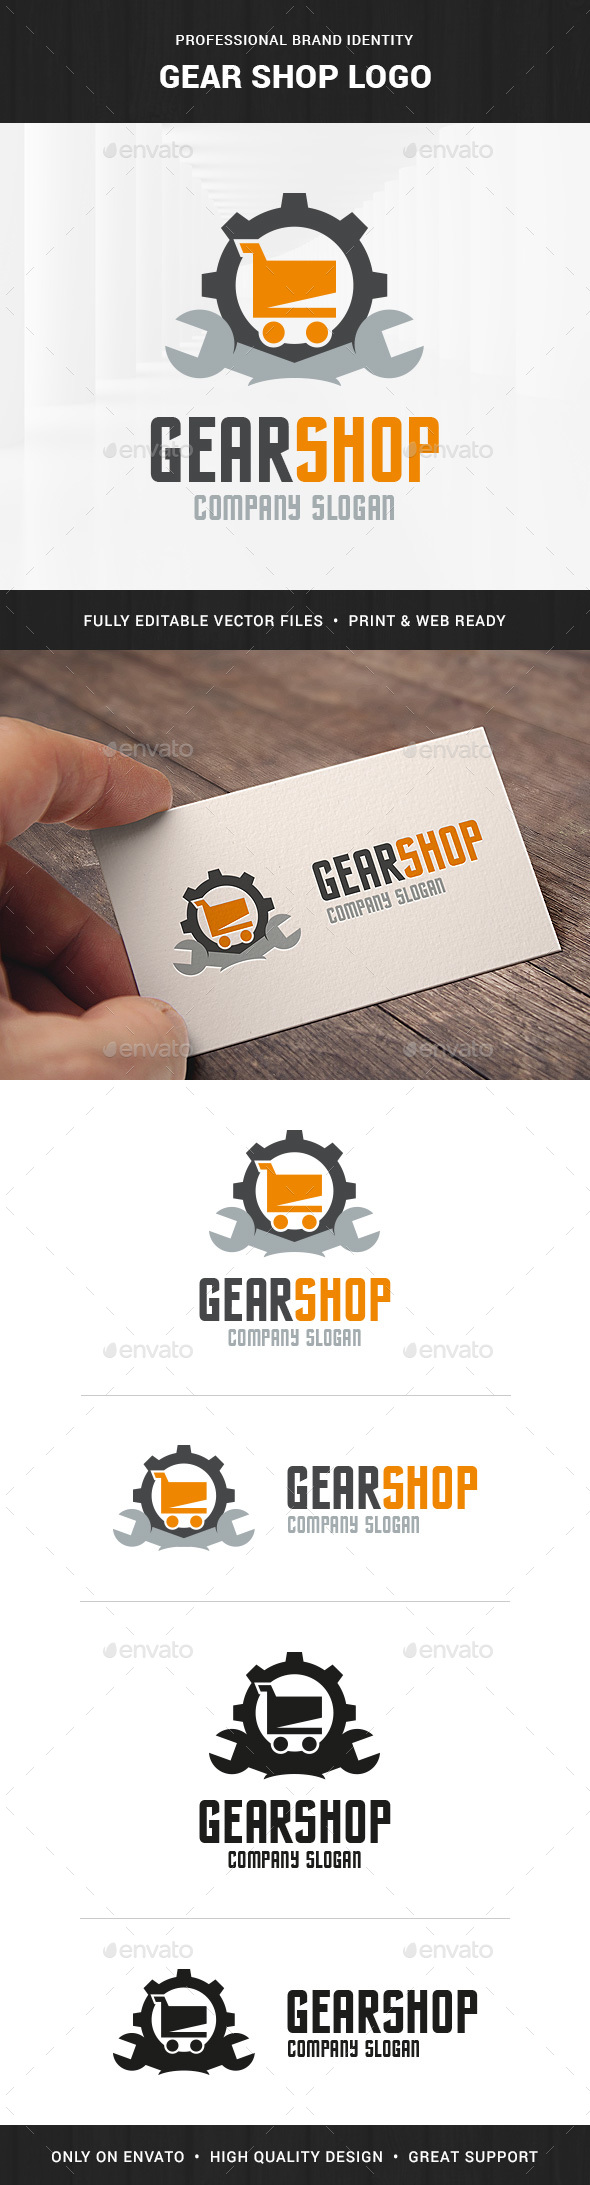 Gear Shop Logo Template - Objects Logo Templates